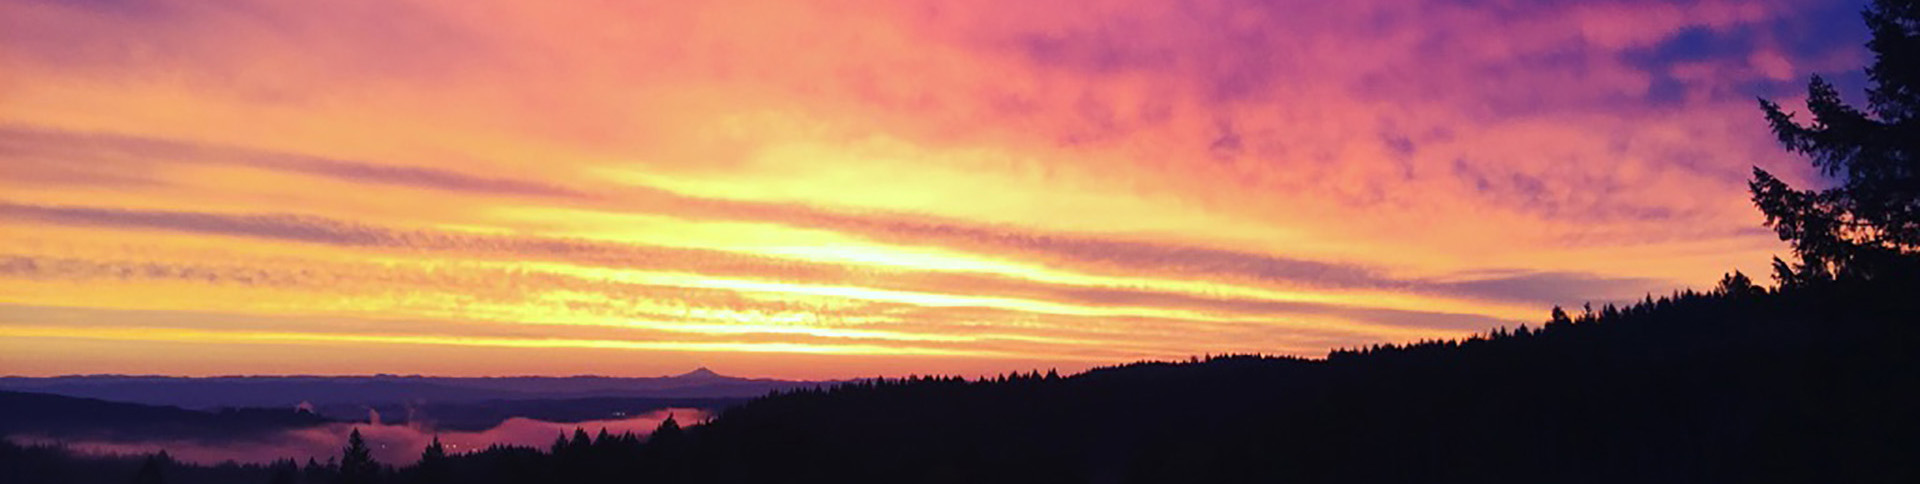 oregon sunset over the hills, mountains, water and trees; trauma healing, somatic awareness healing